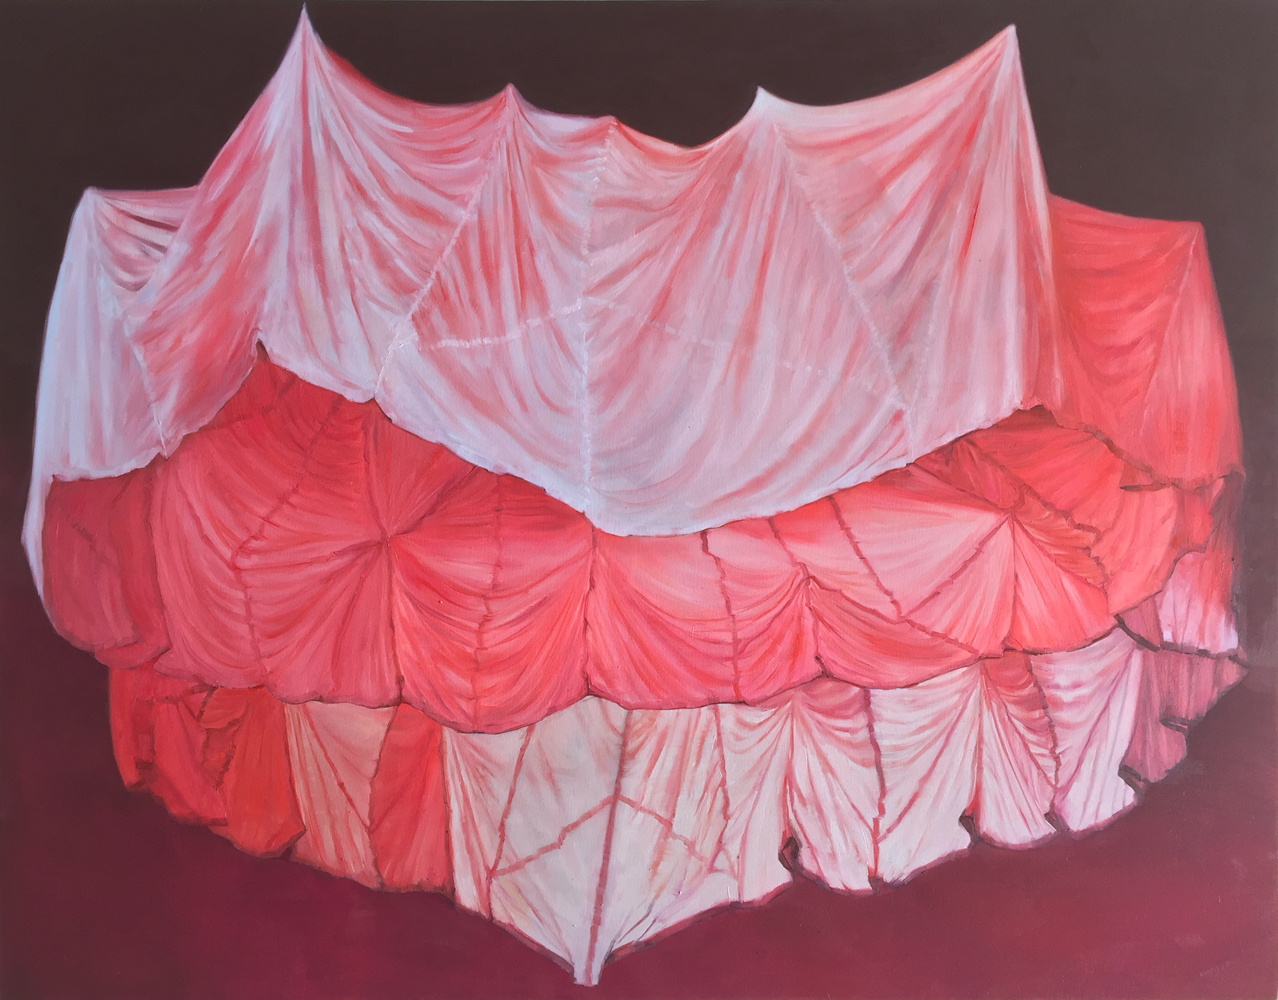 Thuy-Van Vu, Good as Any Other, 2018, oil on canvas, 51 x 64 inches, $5500.